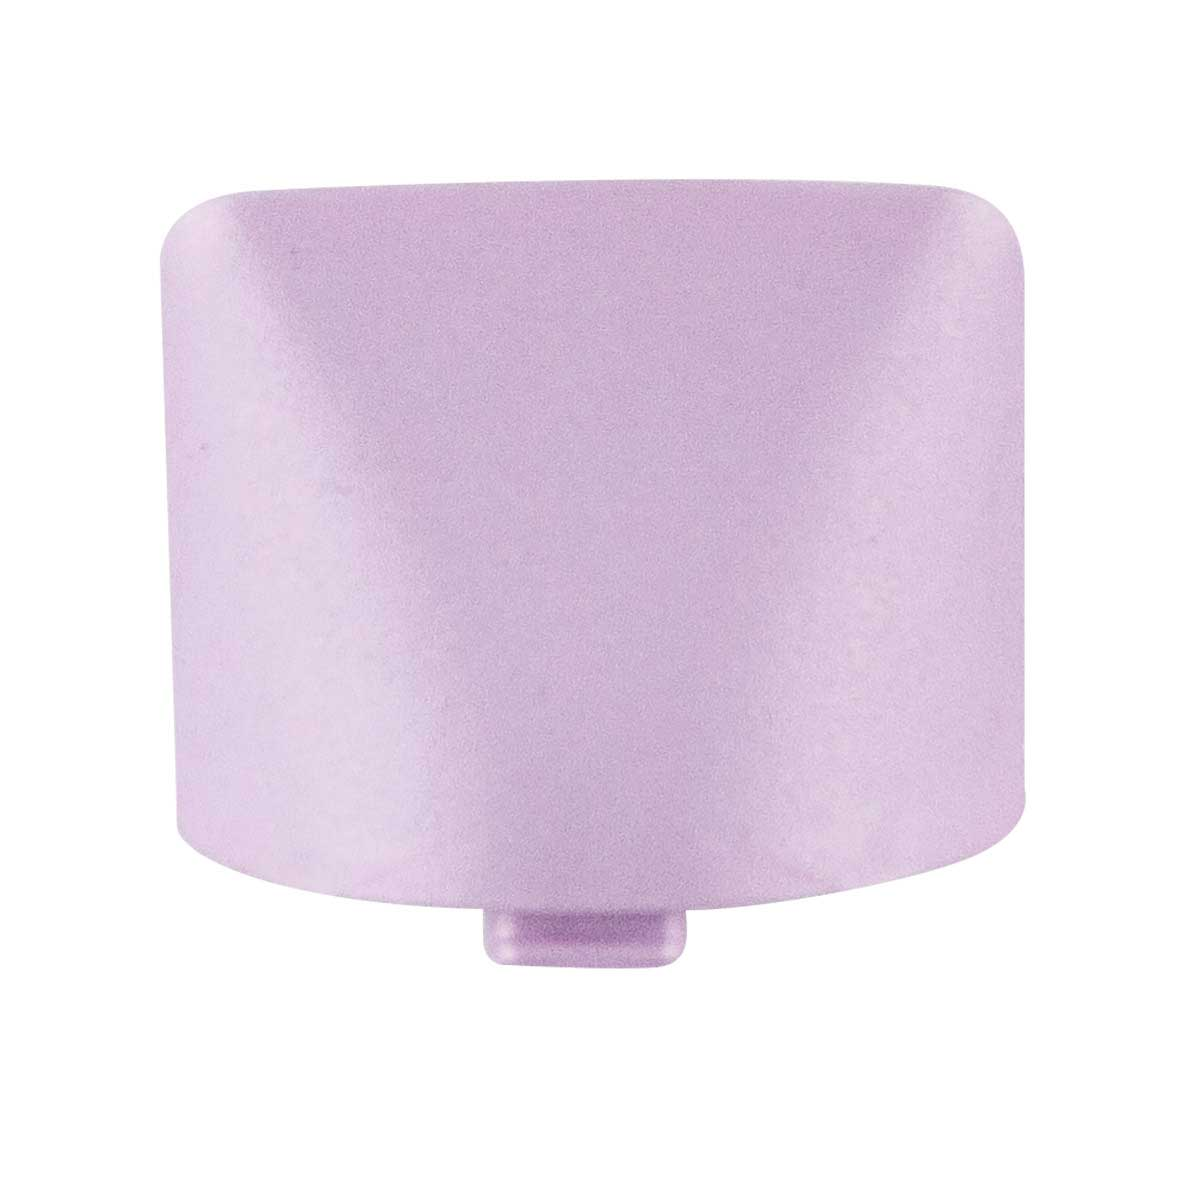 Pink AGC Drive Cap for Andis AGC clipper